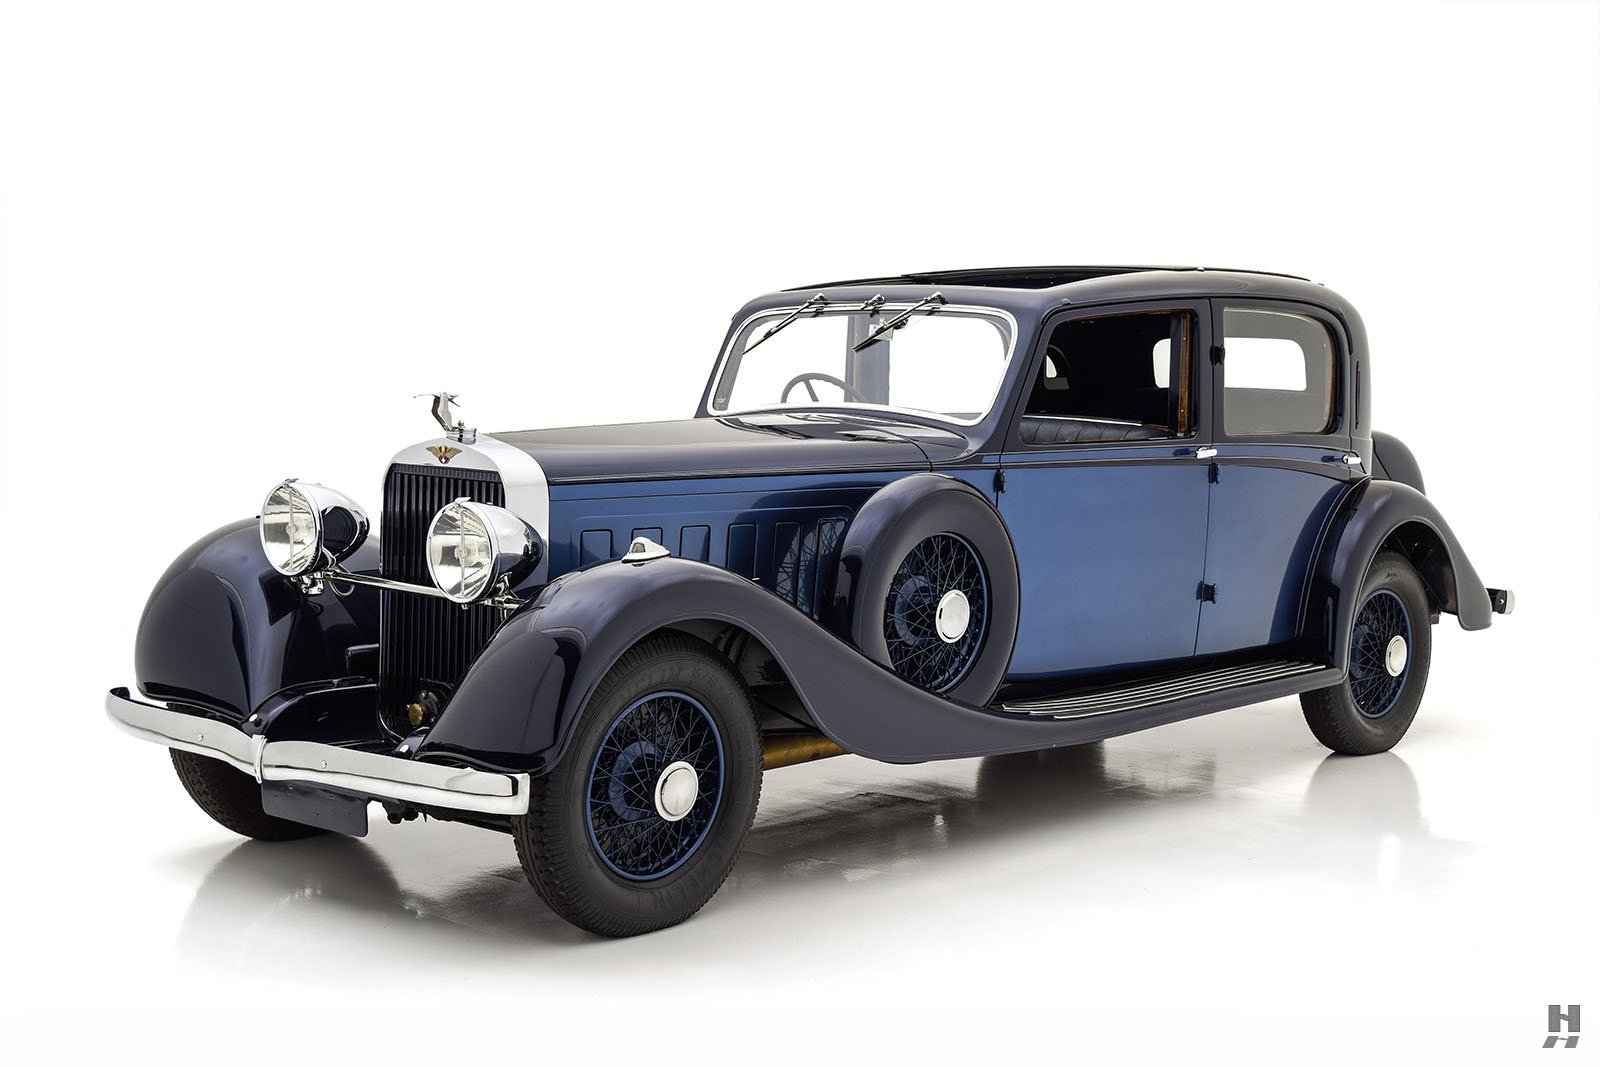 1936 HISPANO-SUIZA K6 BERLINE For Sale (picture 1 of 6)